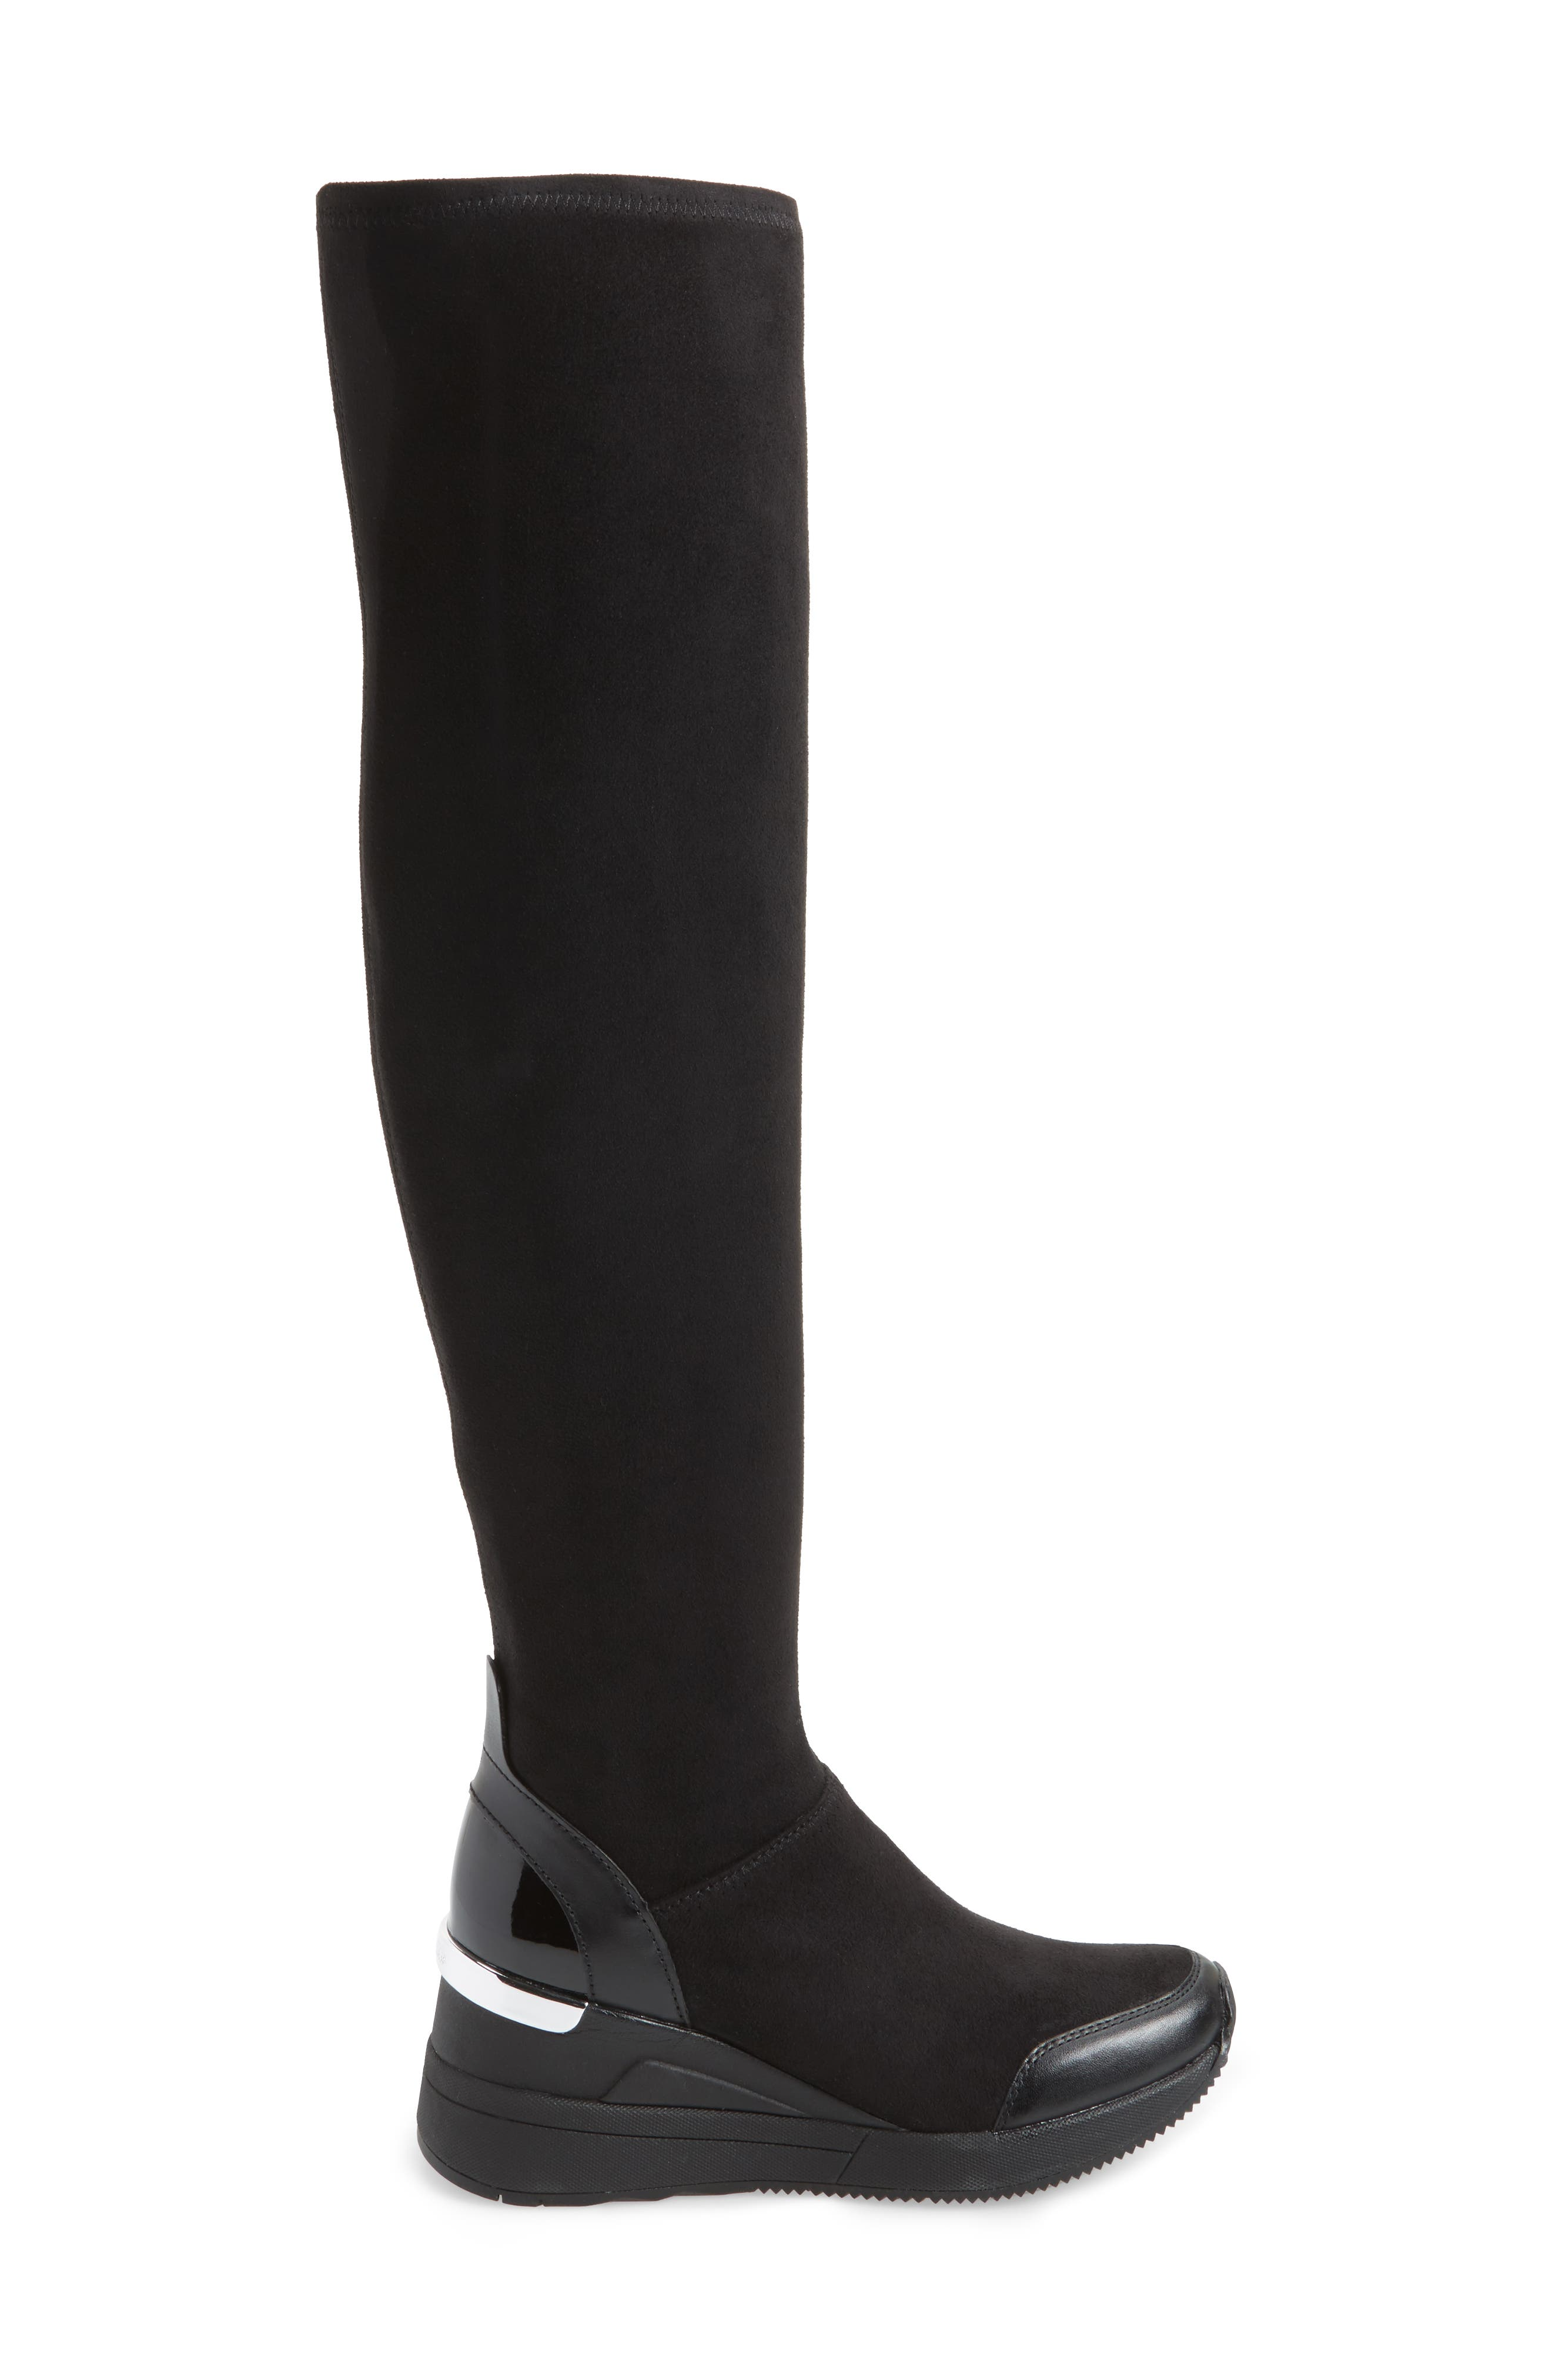 Ace Over the Knee Boot,                             Alternate thumbnail 3, color,                             Black Suede